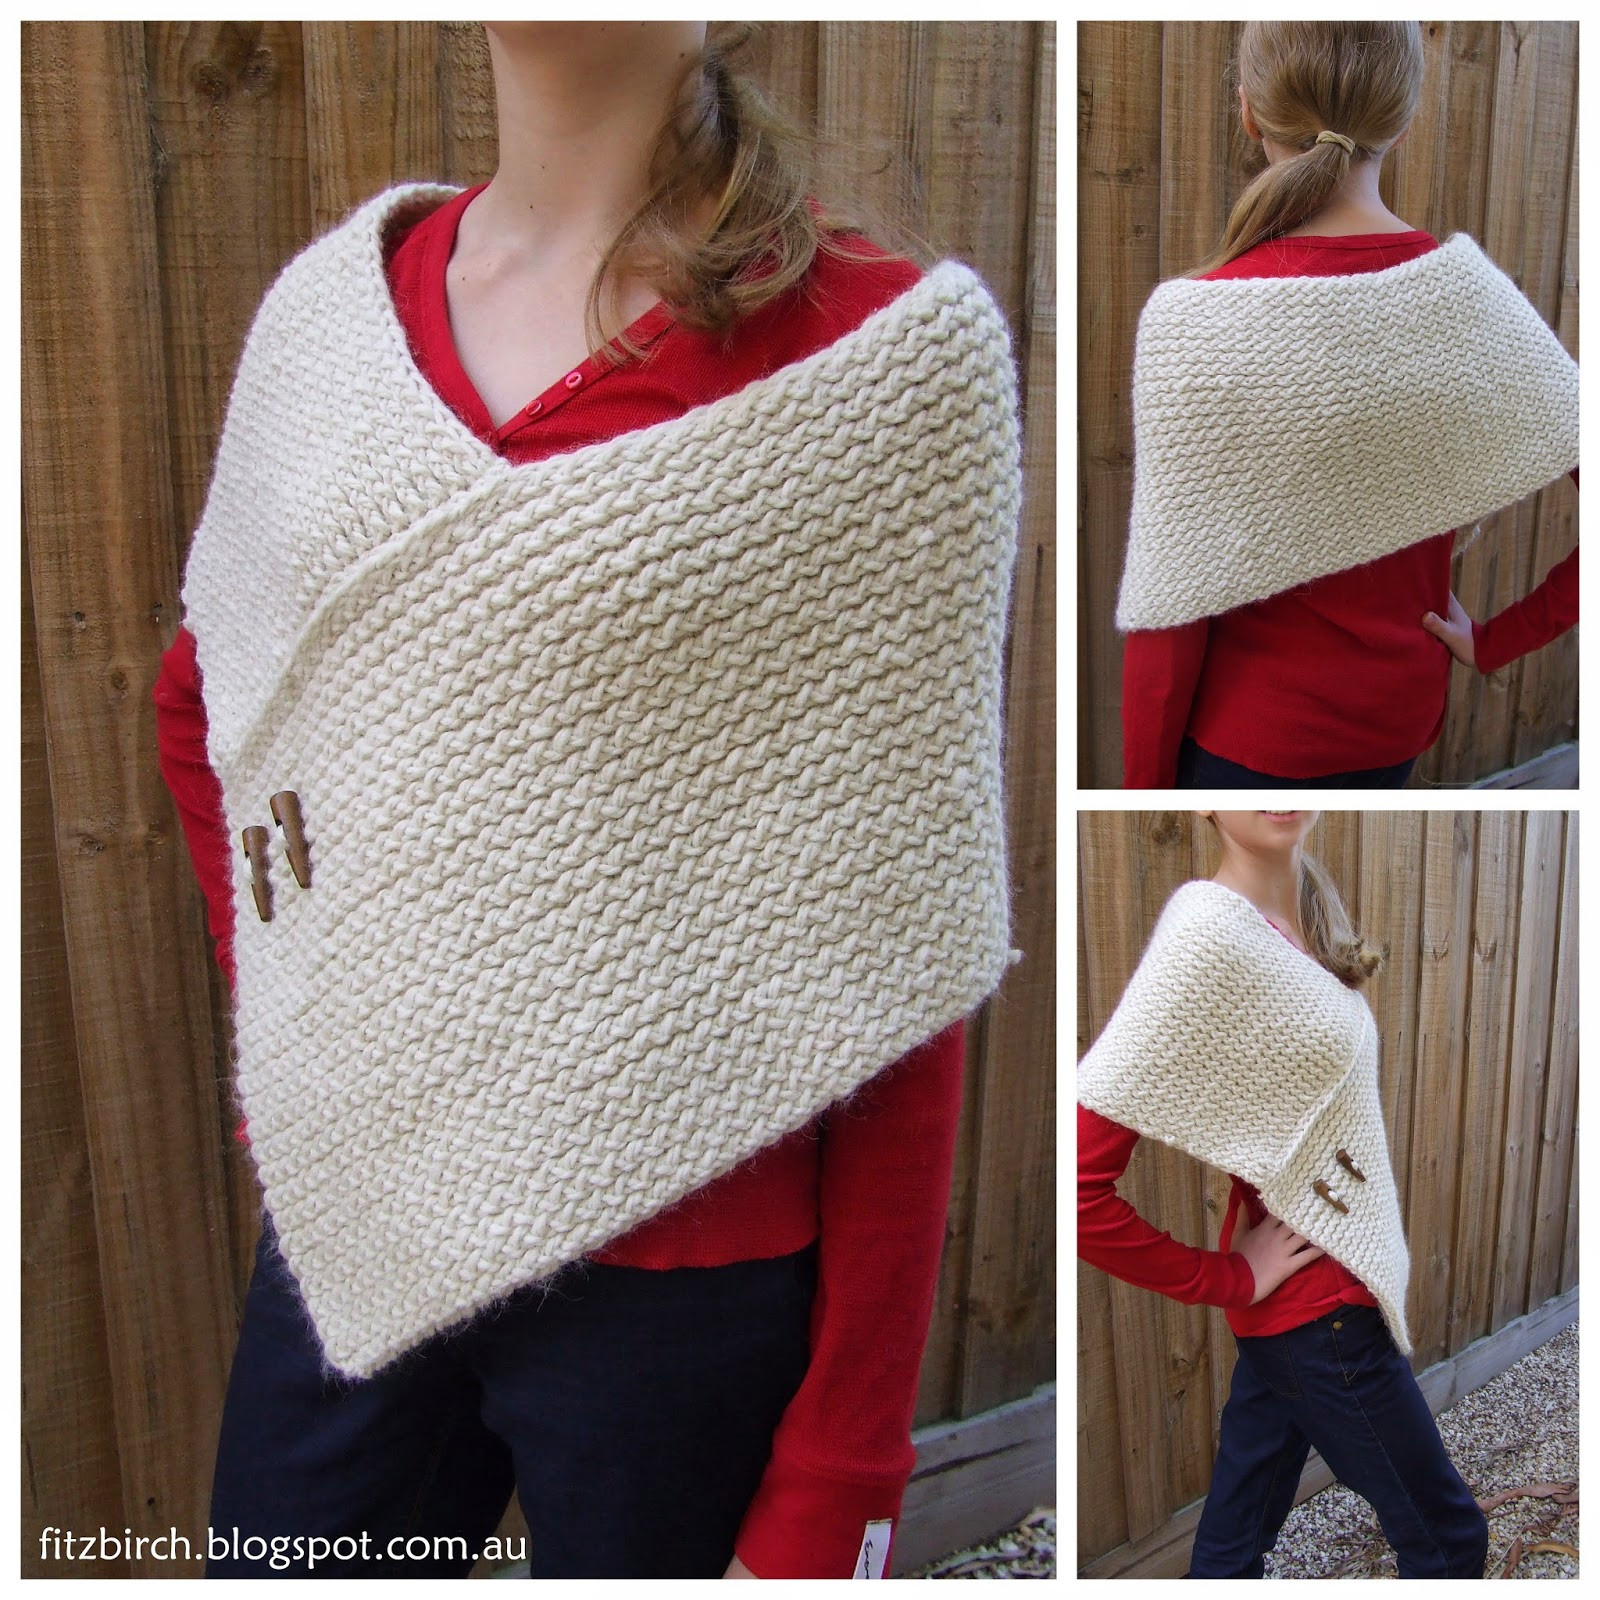 FitzBirch Crafts Top 5 Free Wrap Patterns